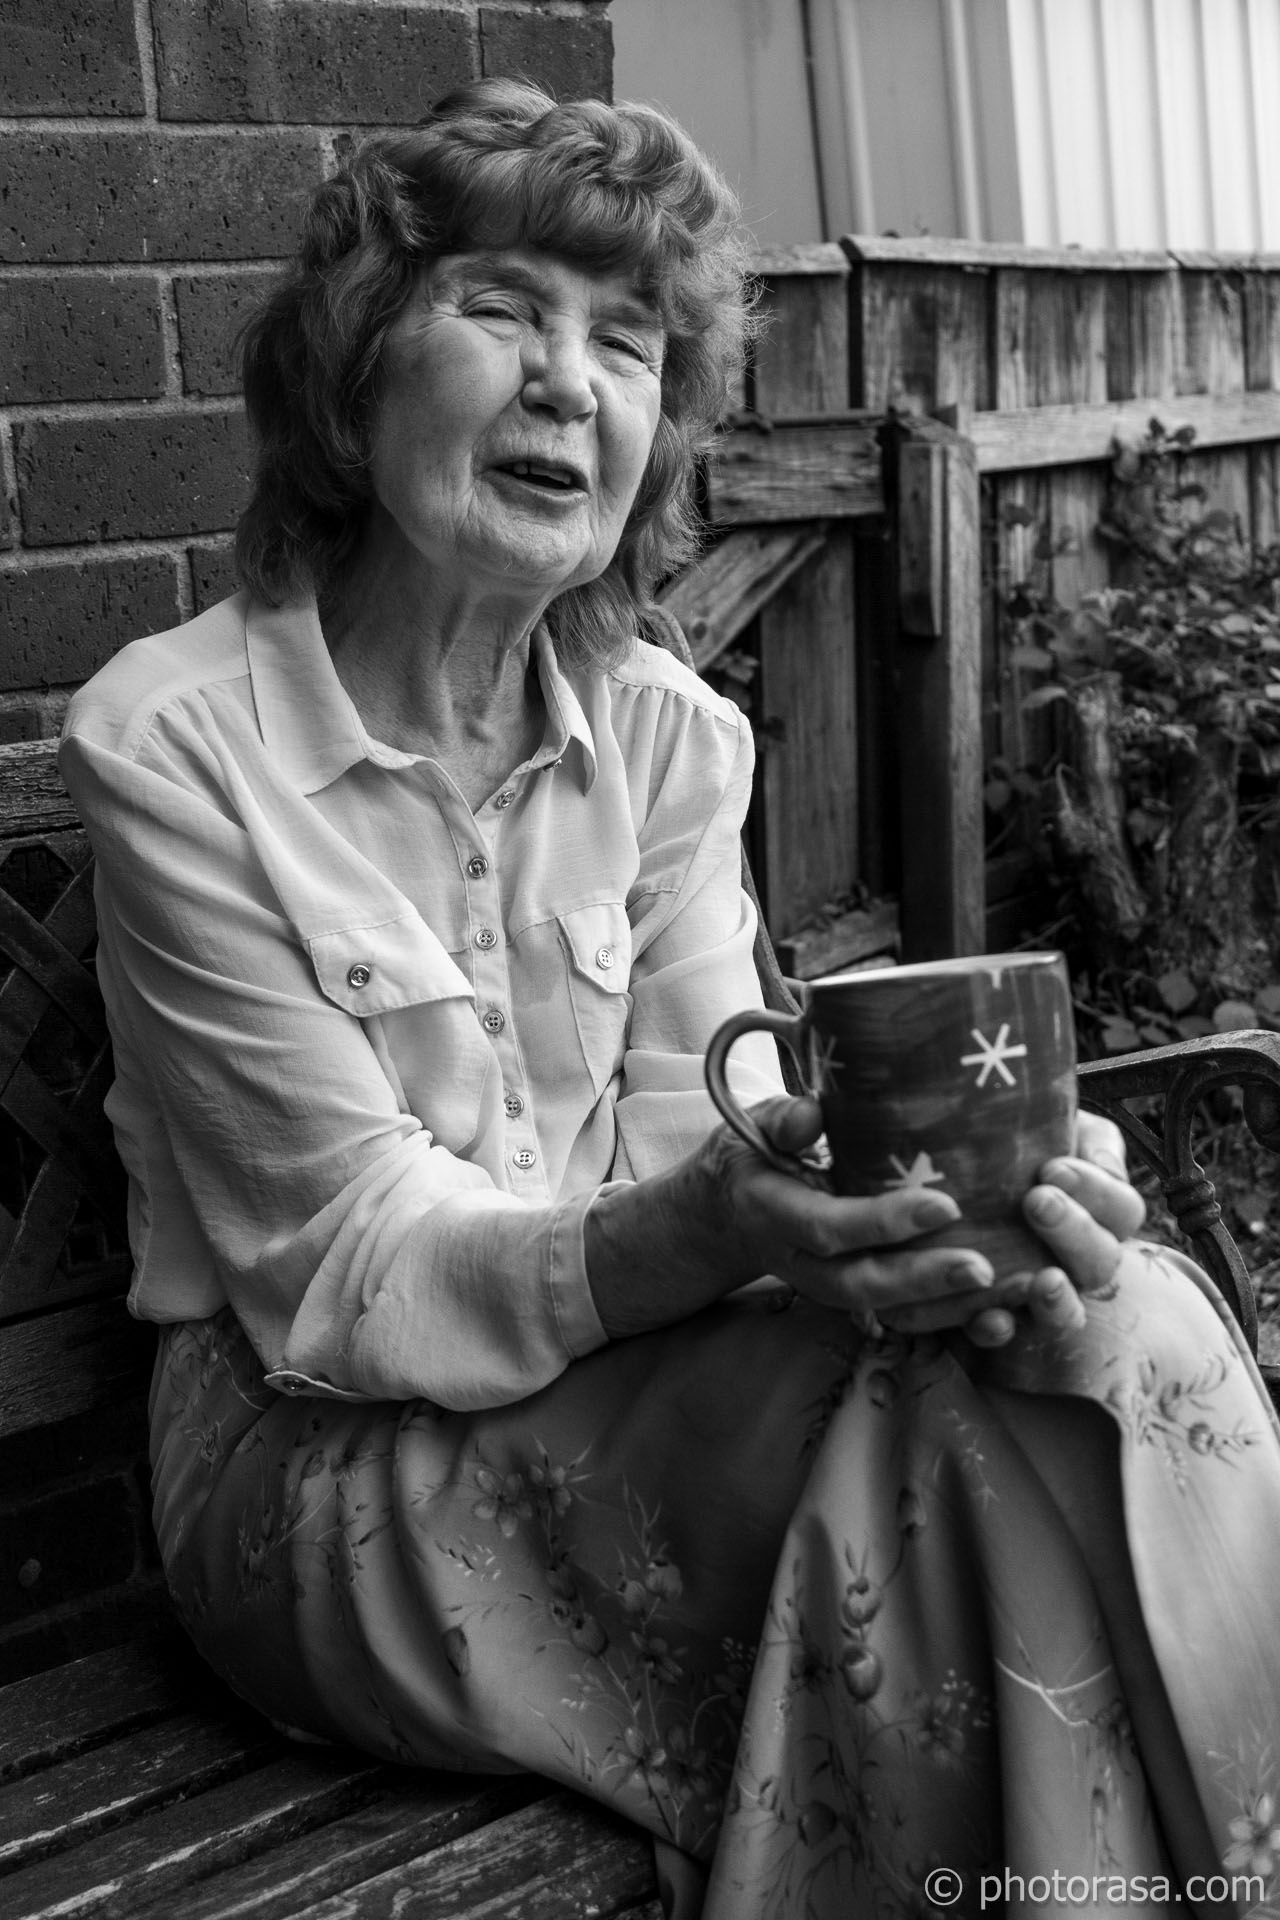 http://photorasa.com/joan/talking-with-a-cup-of-tea/